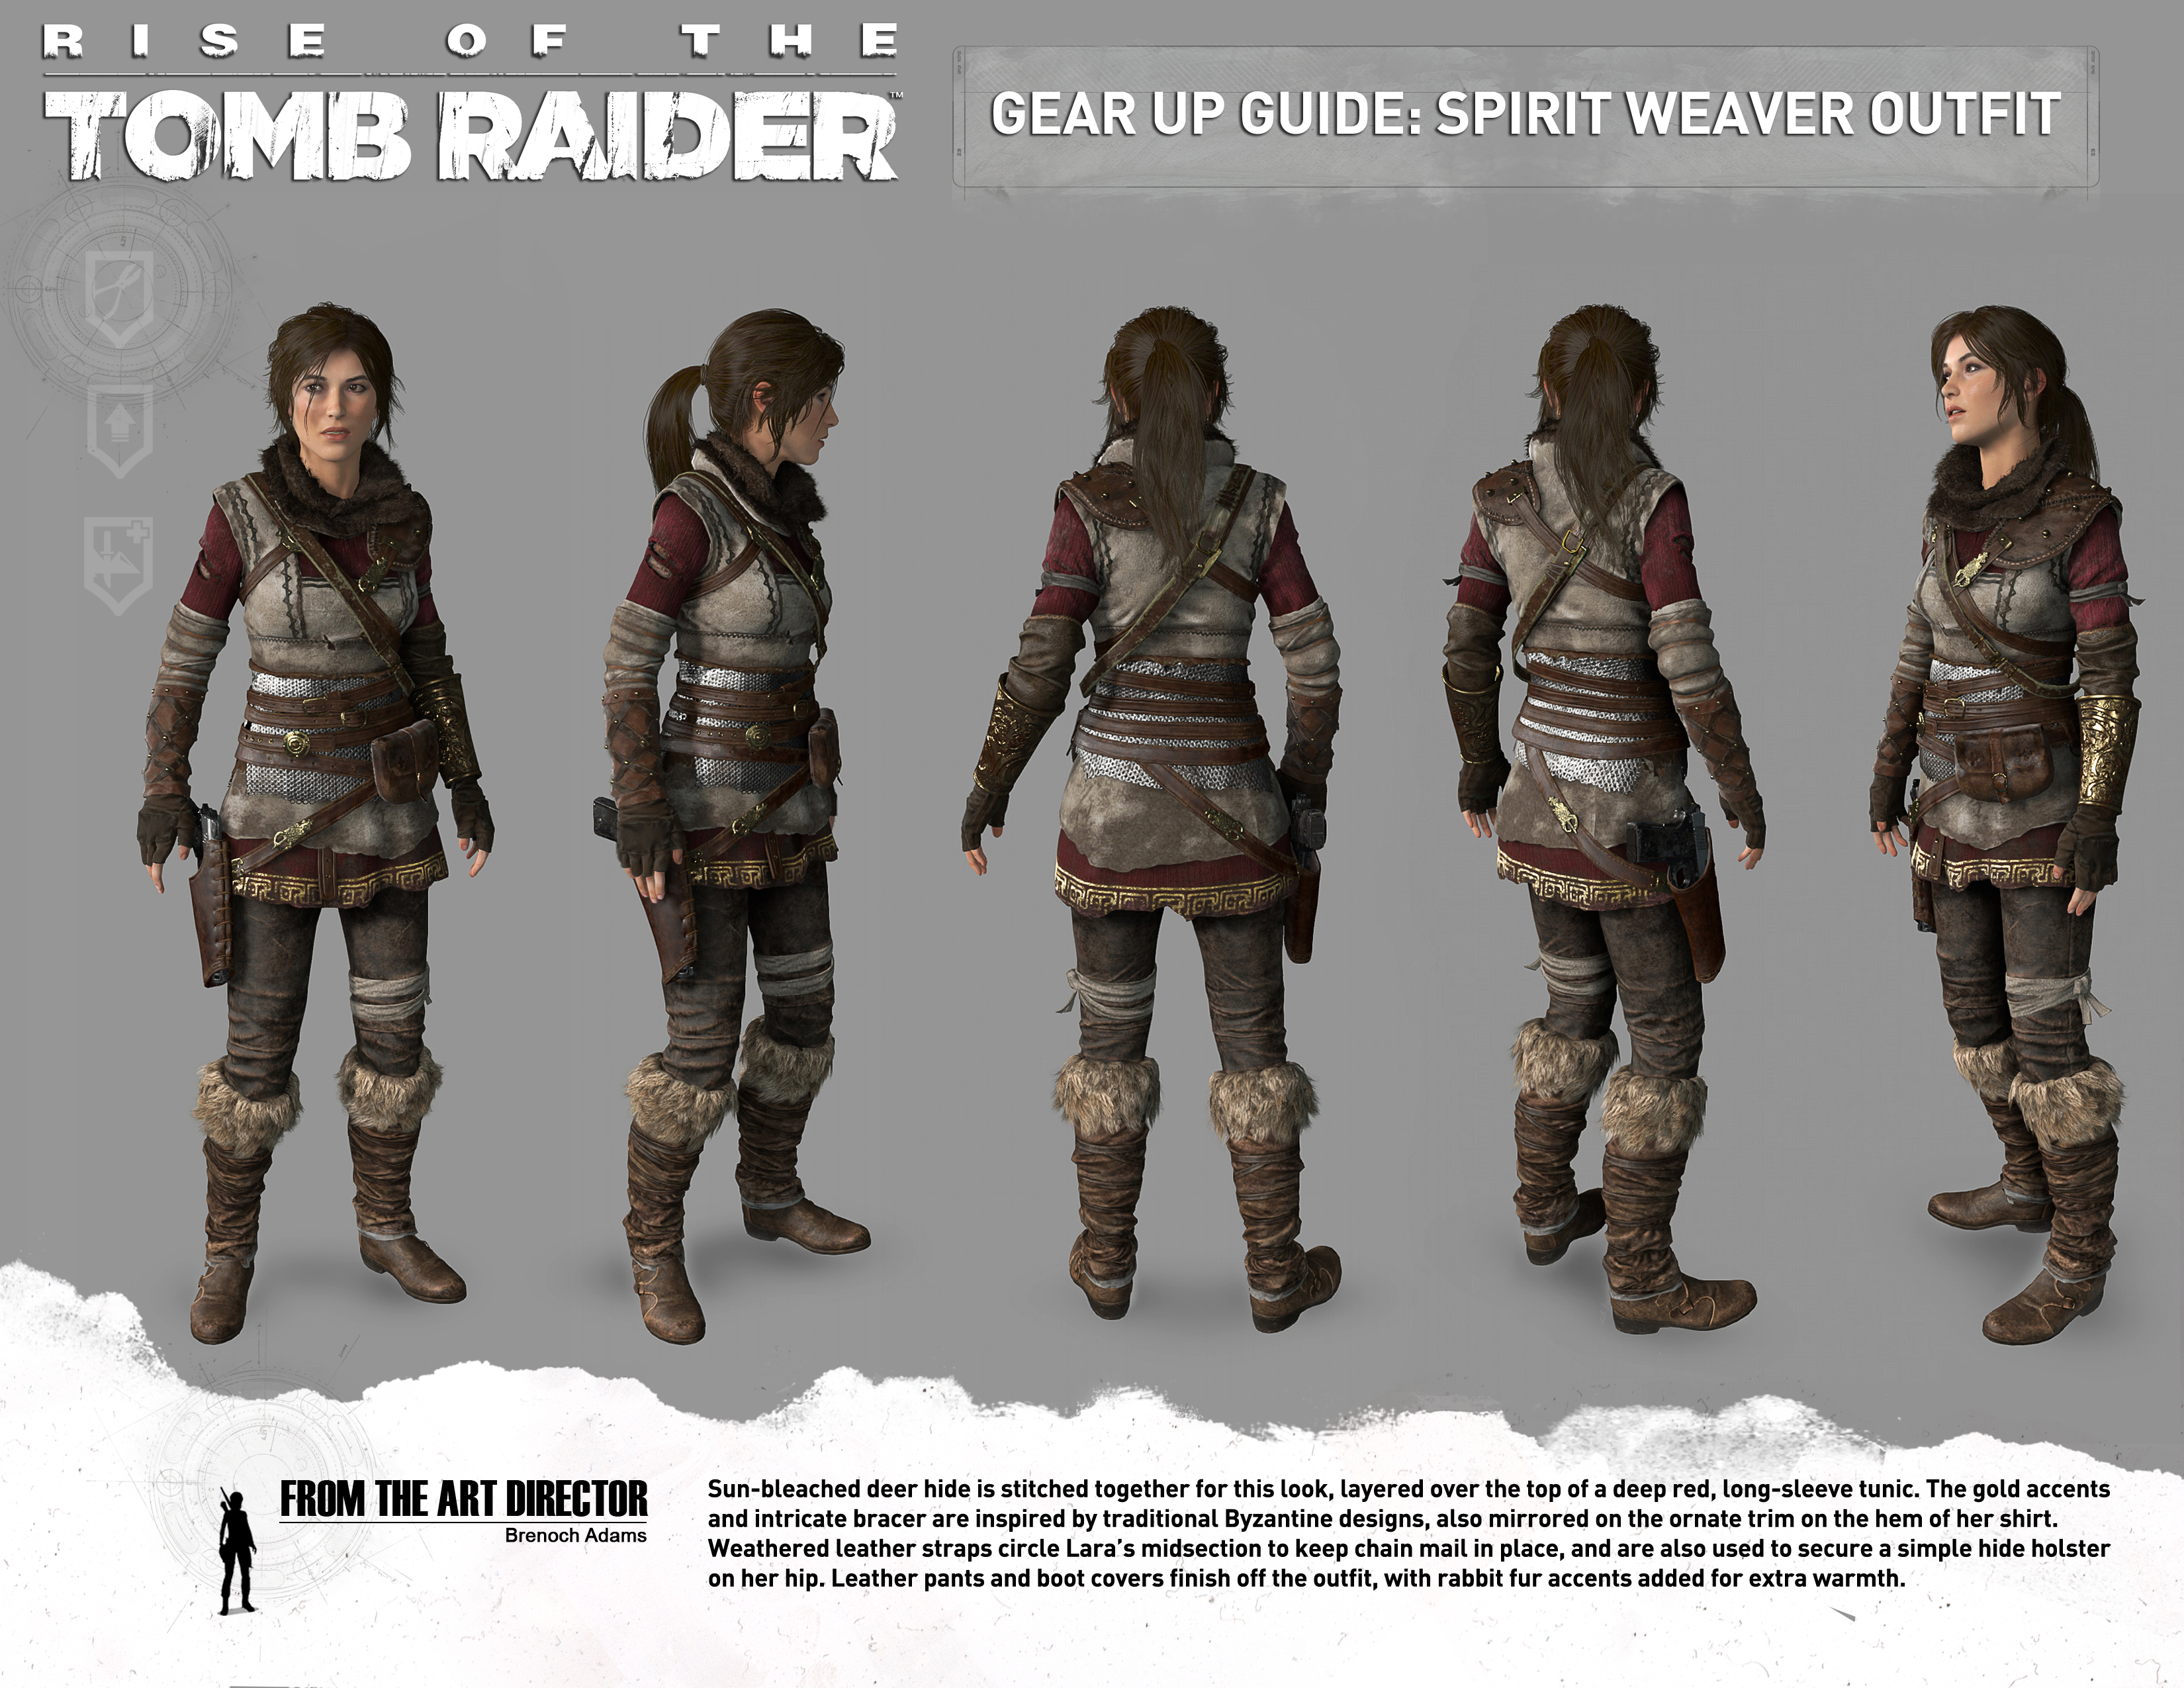 Tomb raider 2023 outfits nsfw images